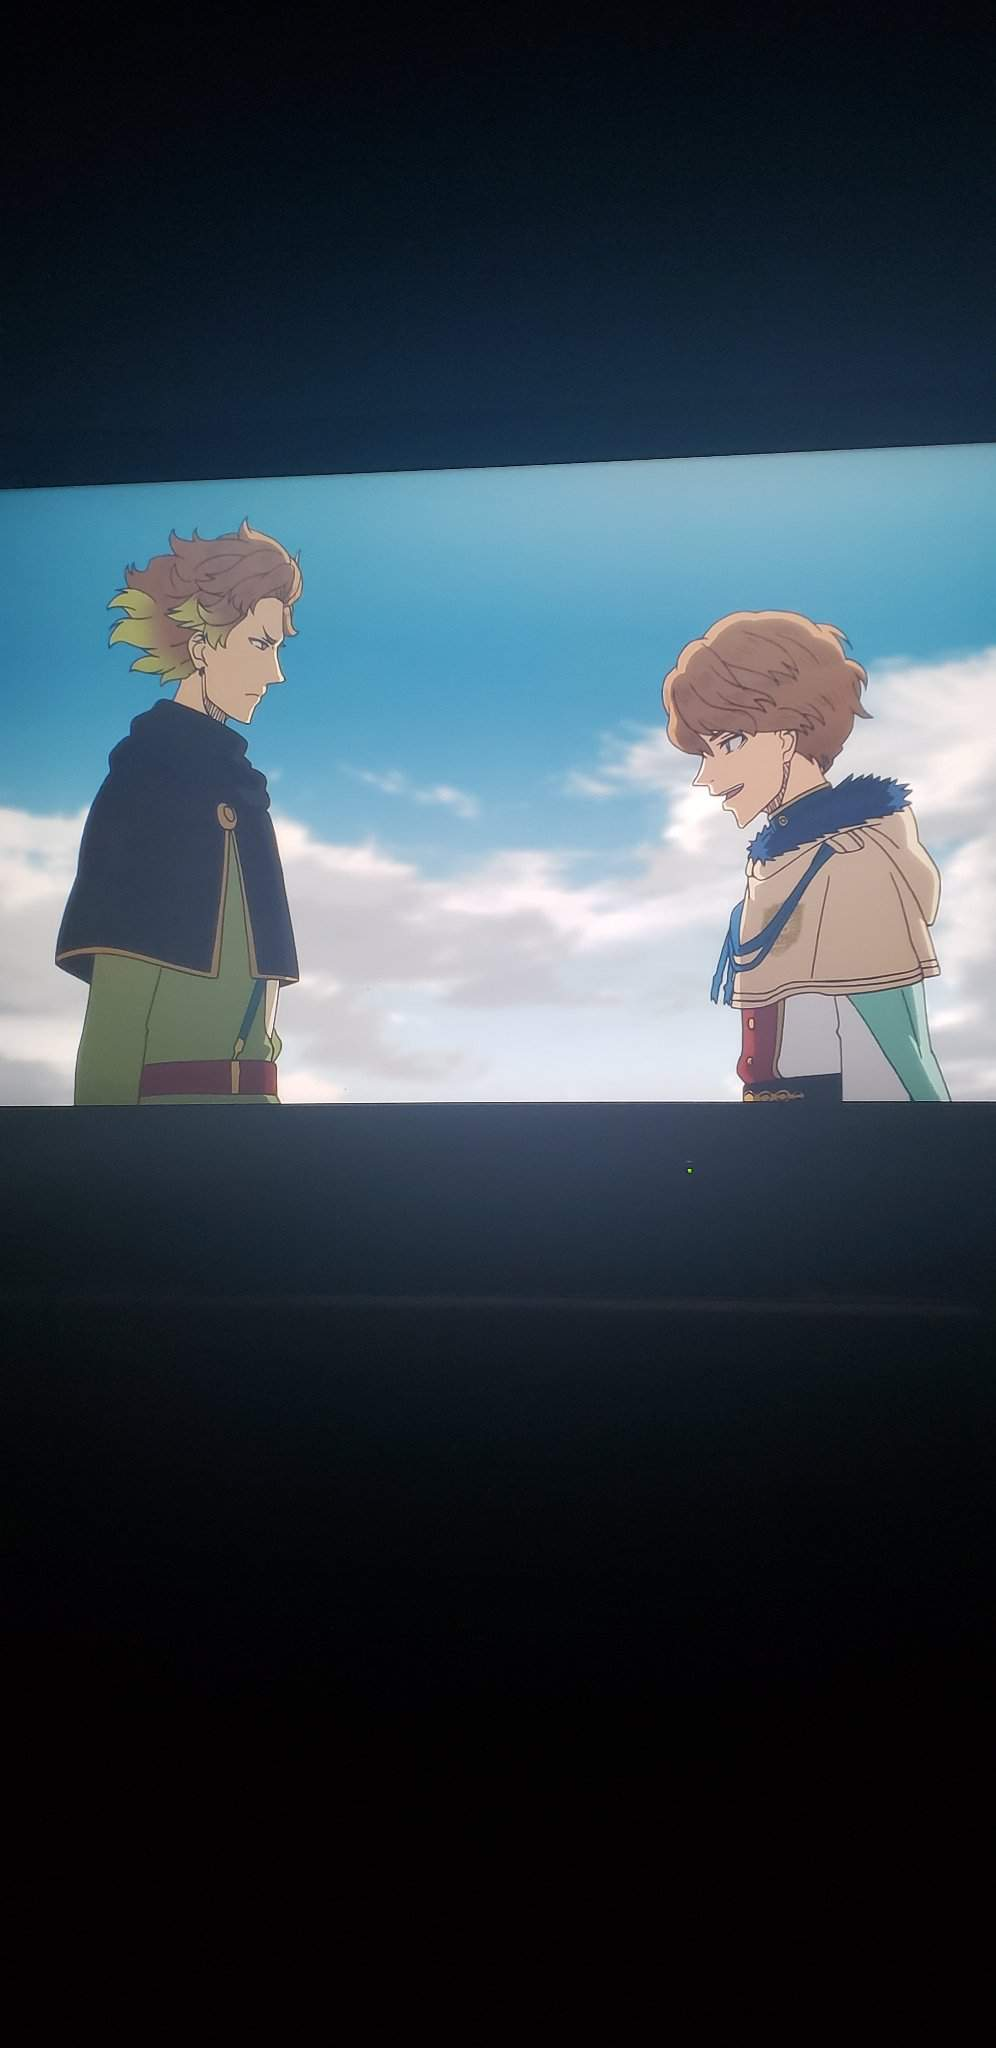 I Would Just Like To Tell You All That Finral Is Taller Then His Older Brother Black Clover Amino One figure had reached the top with but his incessant hunger for knowledge and change with a rather impenetrable magic and abilities that aligned the stars to his. i would just like to tell you all that finral is taller then his older brother black clover amino